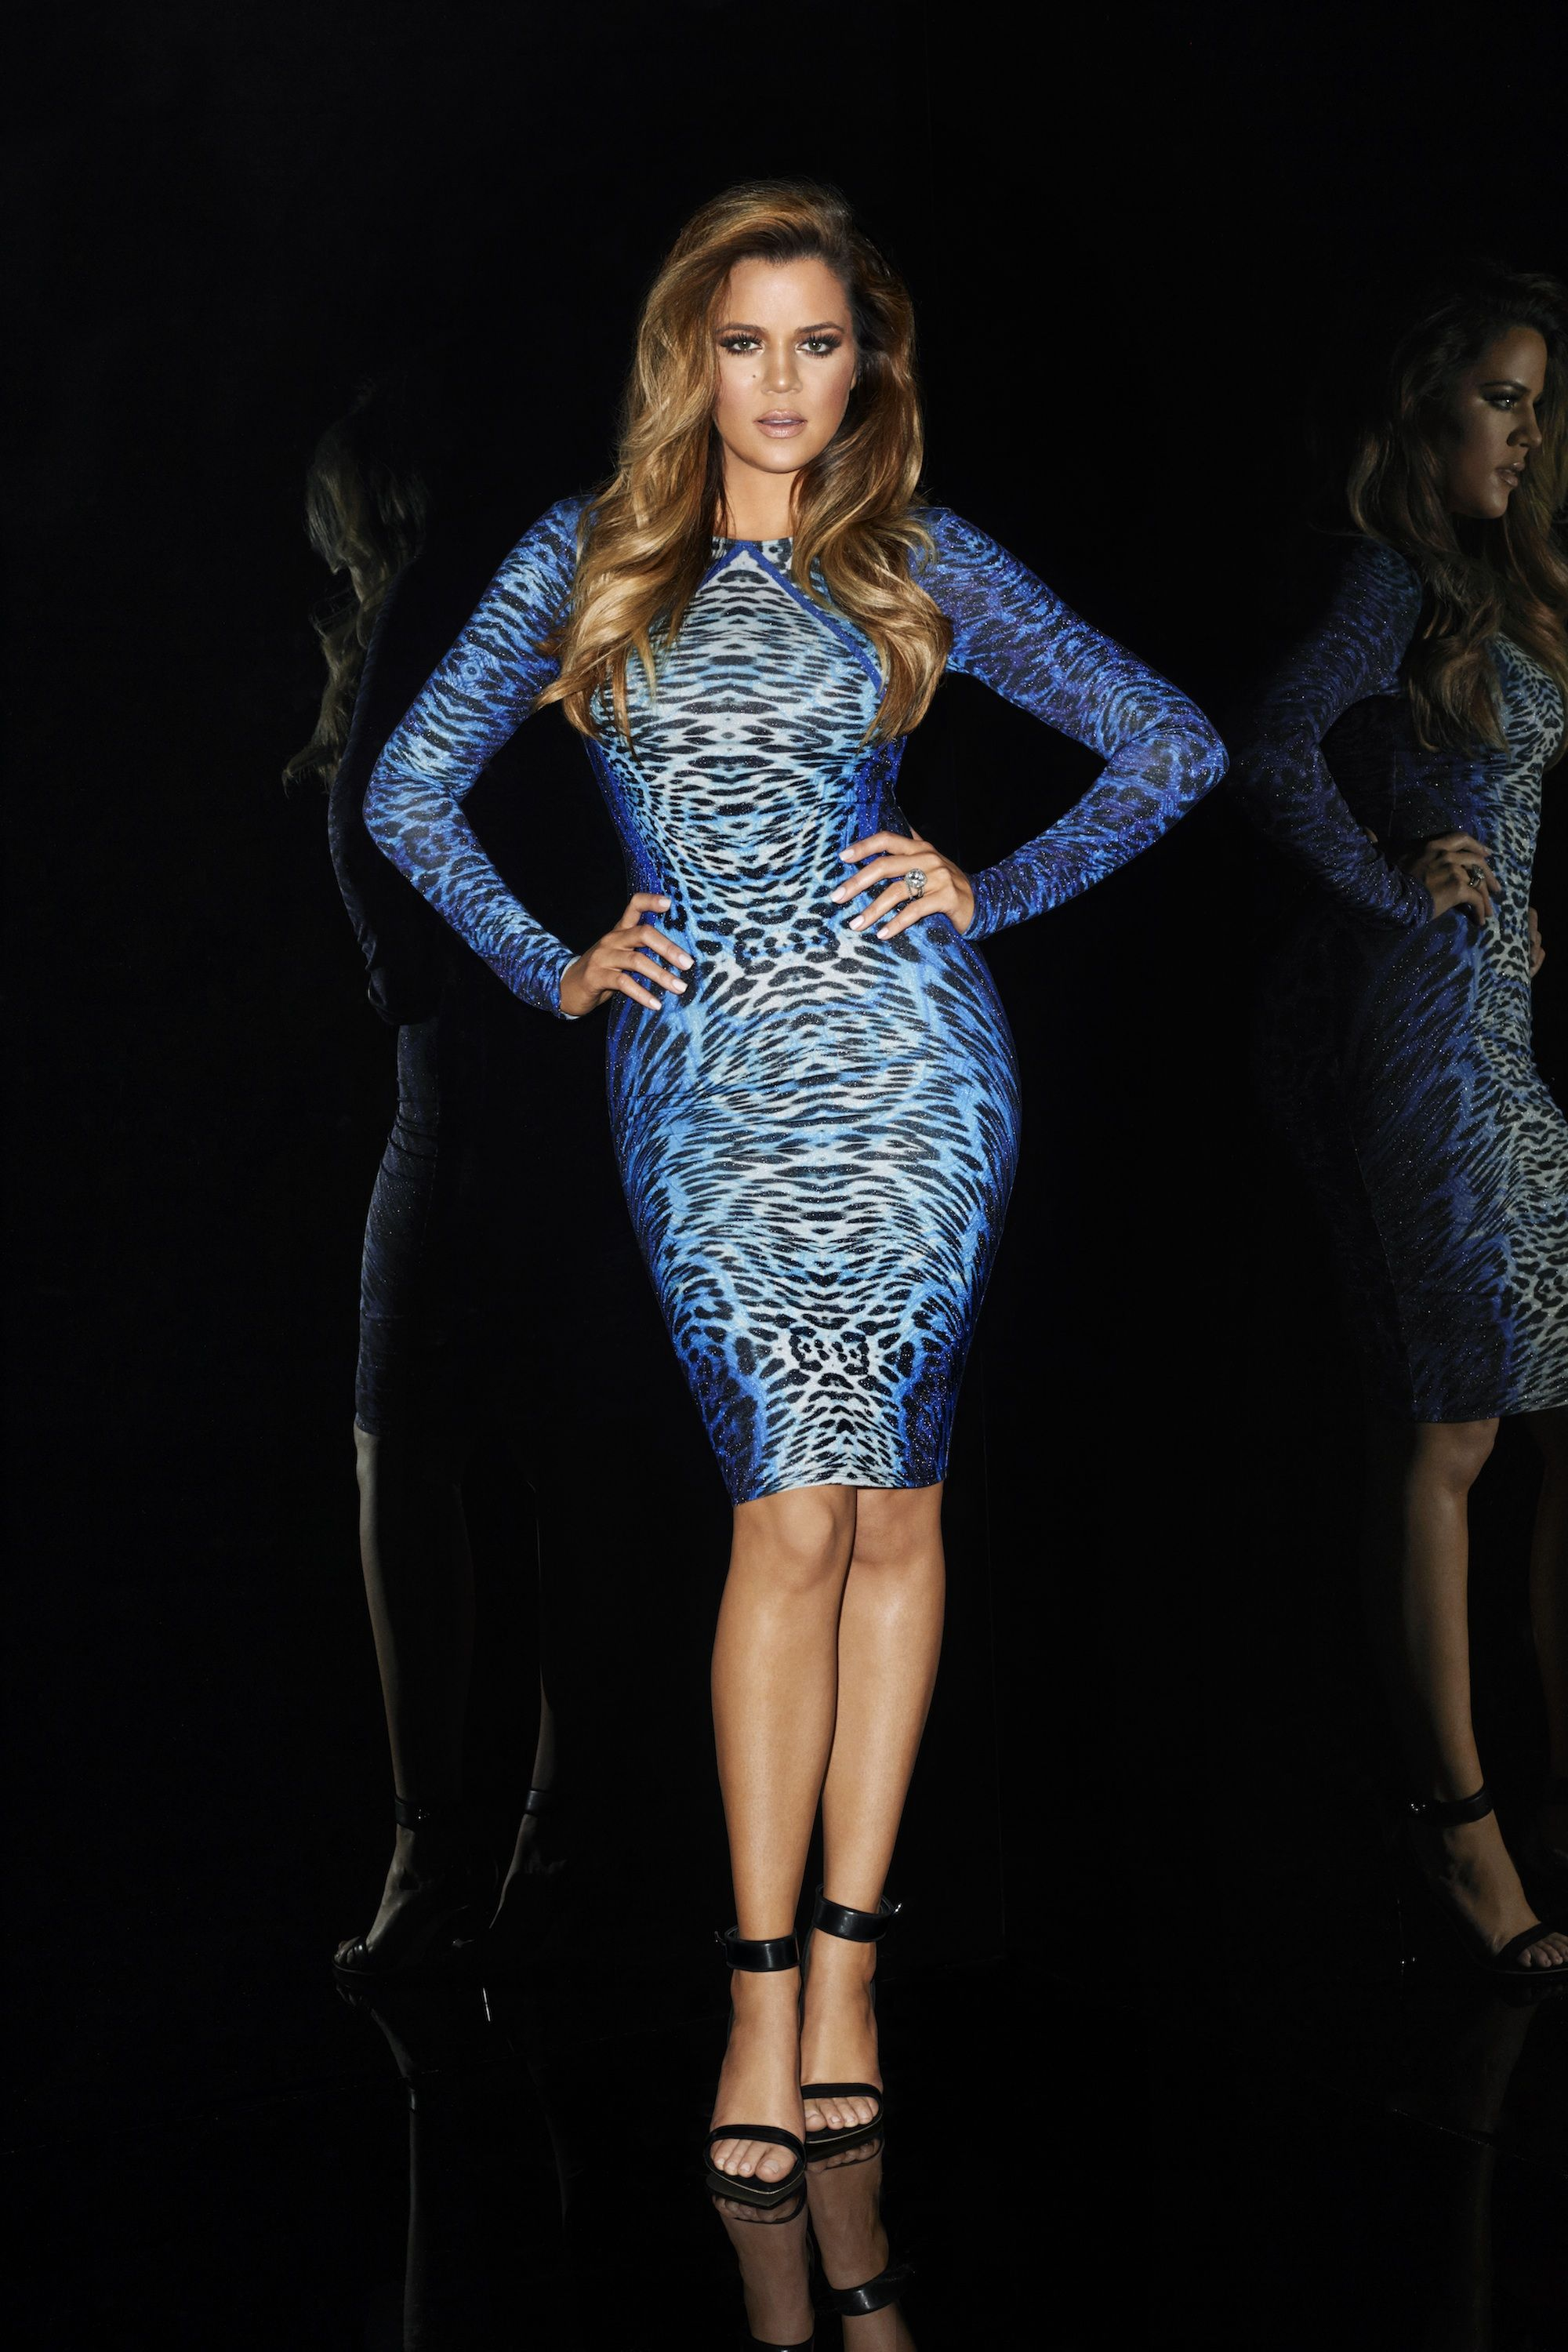 Khloe Kardashian in the Animal Print Bodycon Dress. Available today at Lipsy .co.uk 686279d04